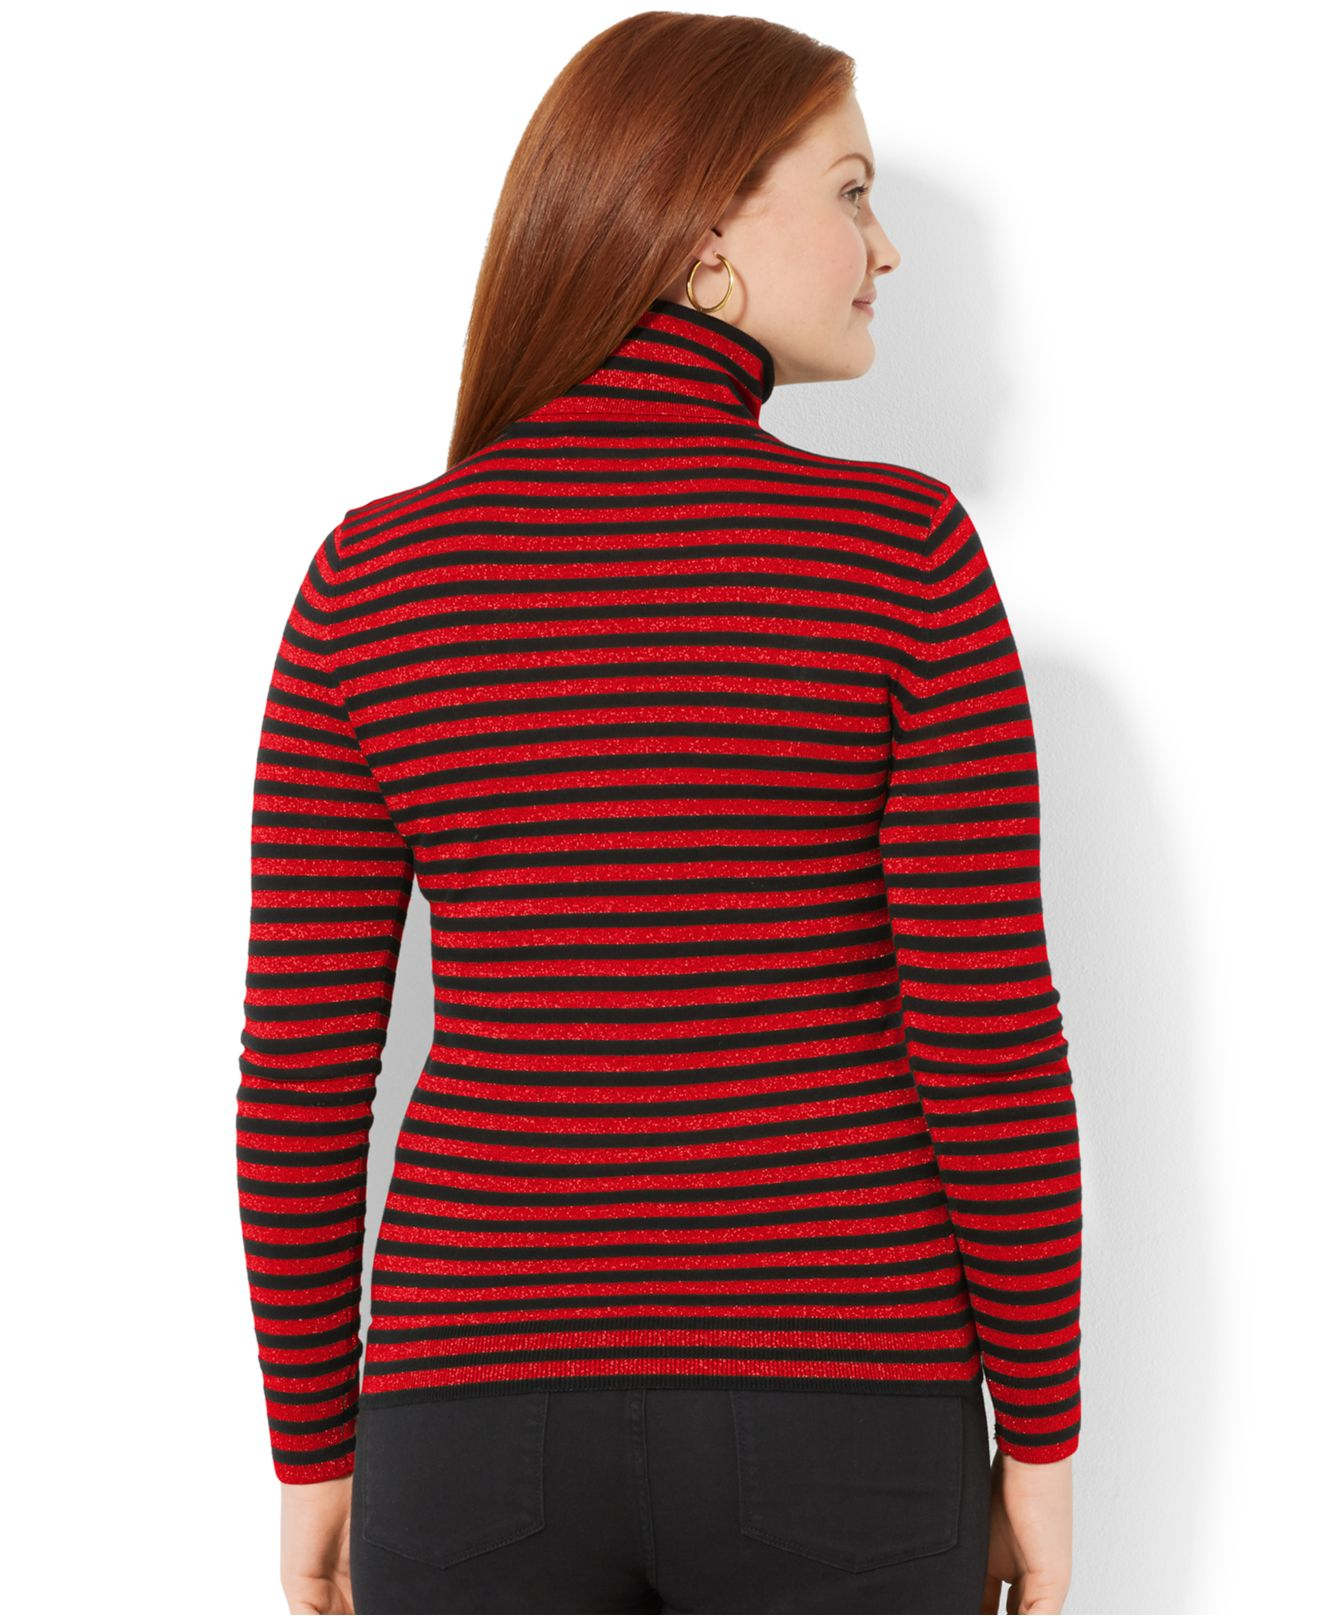 Find the latest and trendy styles of black and white striped turtleneck at ZAFUL. We are pleased you with the latest trends in high fashion black and white striped turtleneck.